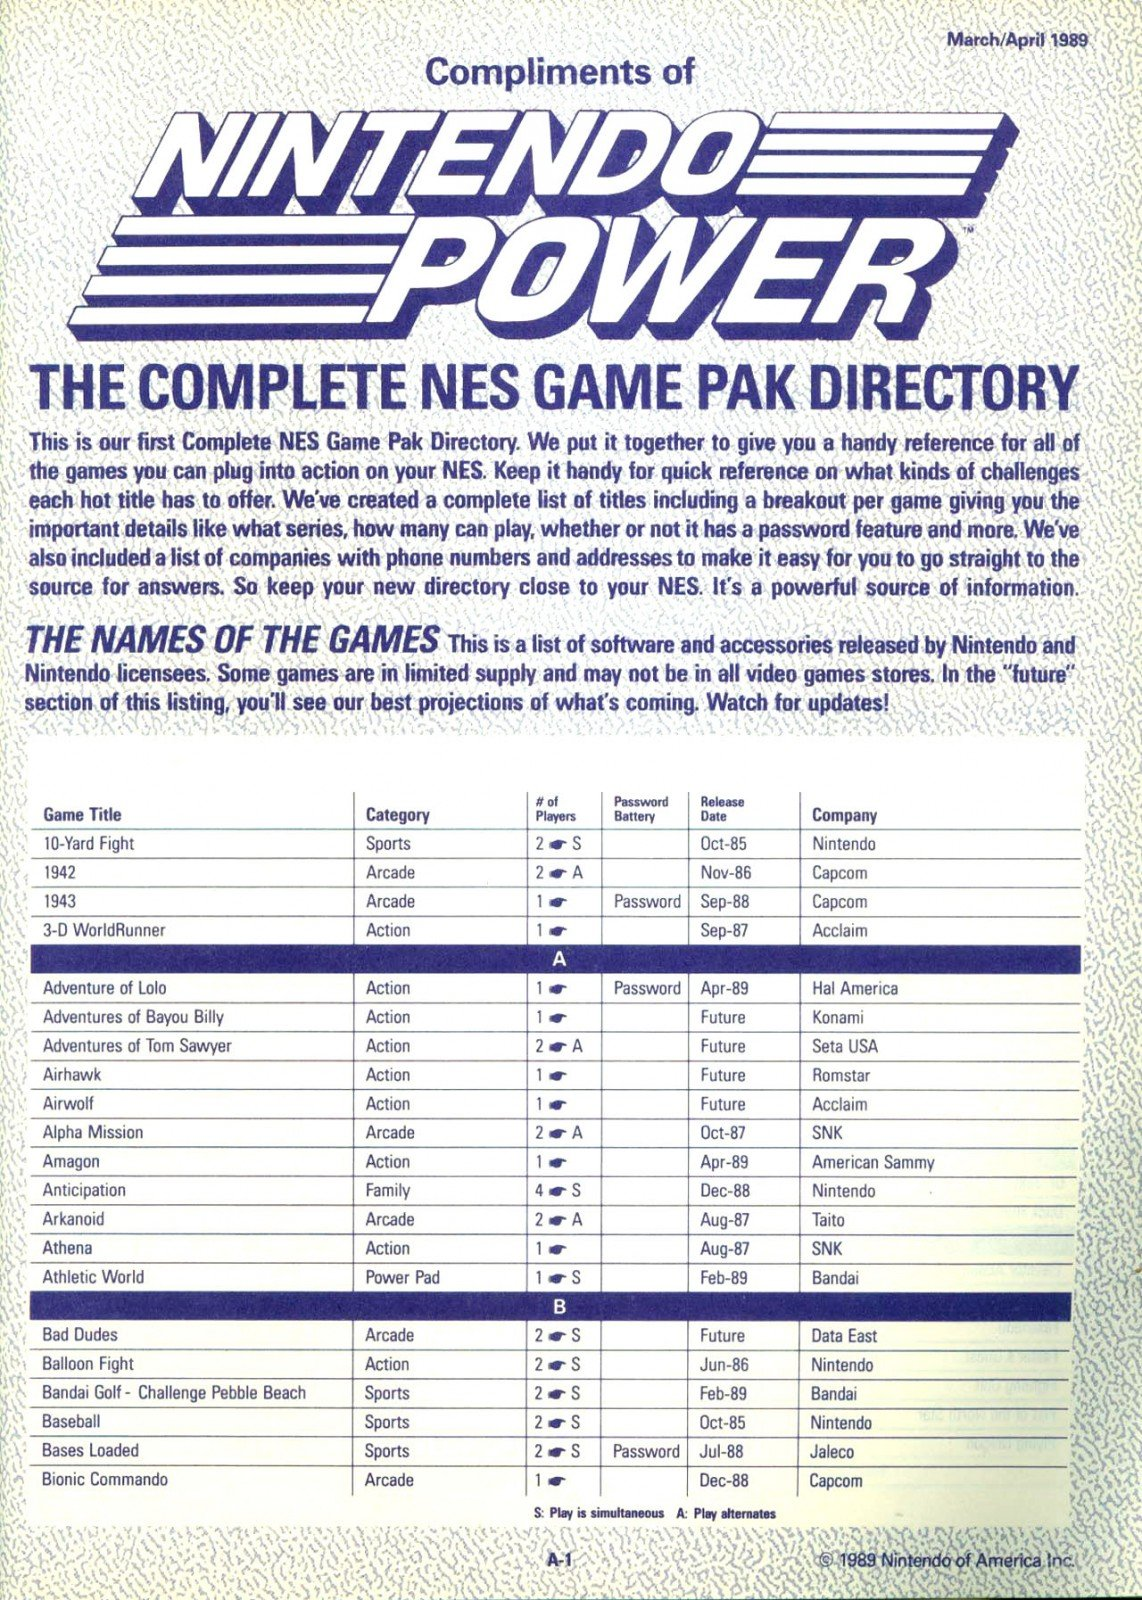 The Complete NES Game Pak Directory (March/April 1989)